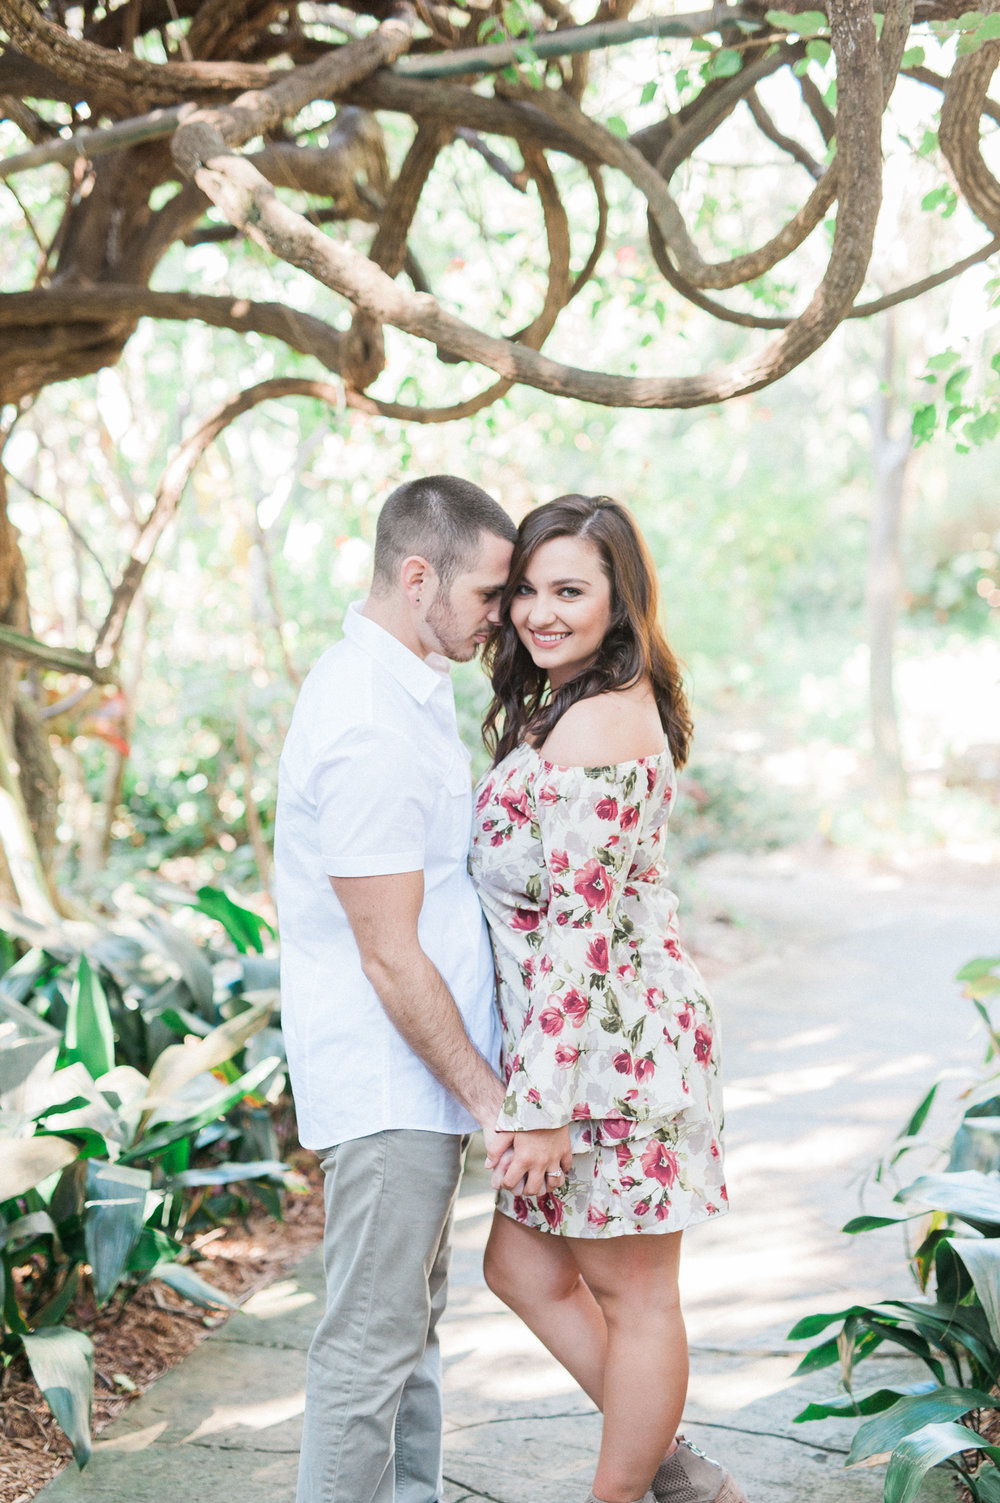 Caitlyn+Mike Engagement Session-WG-58.jpg